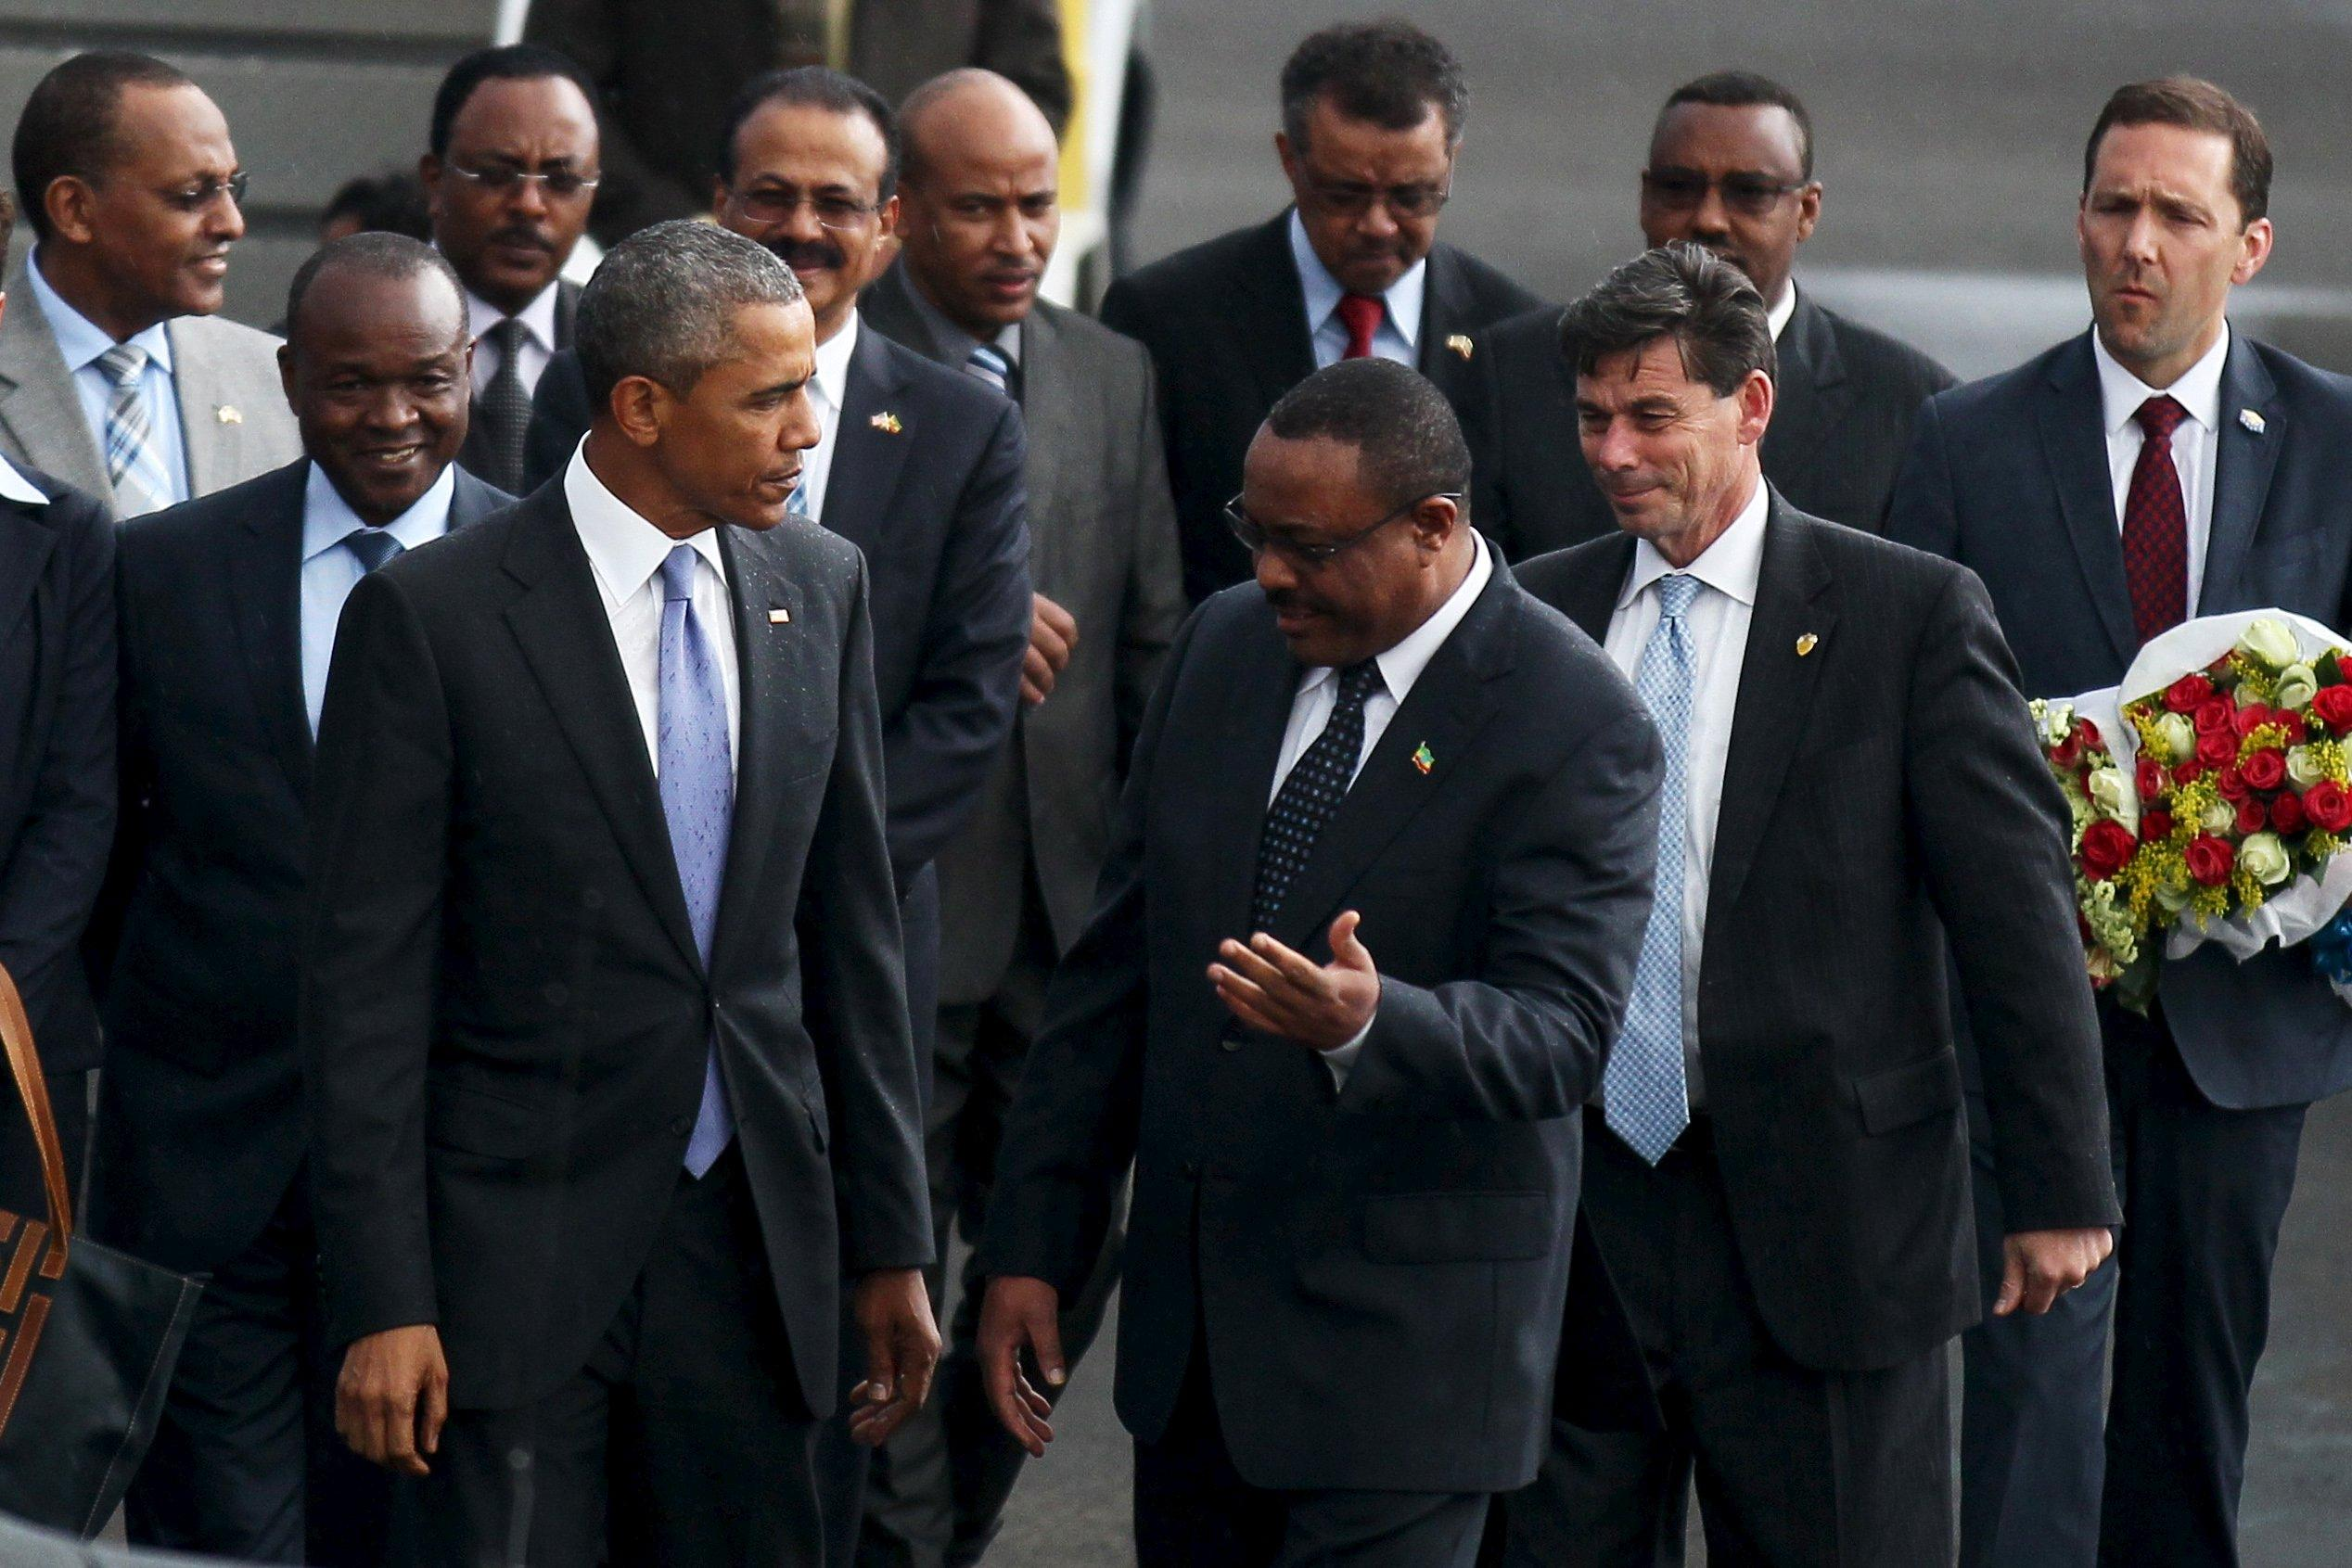 obama arrives in ethiopia